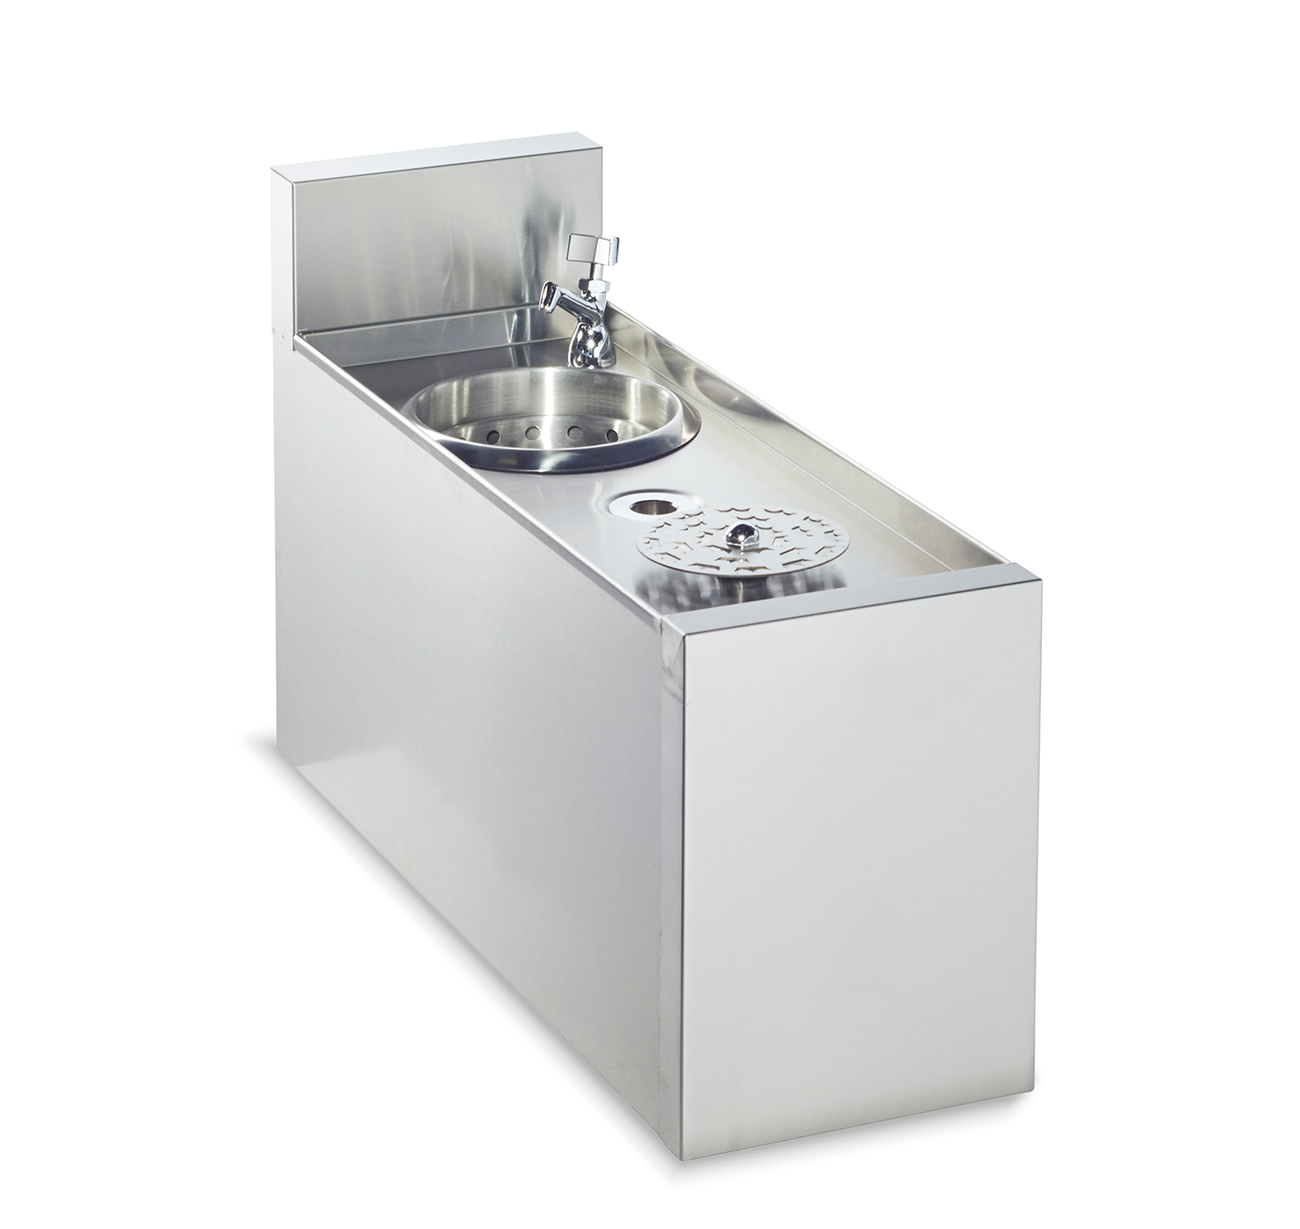 Krowne Metal KR18-MD8 underbar sink units